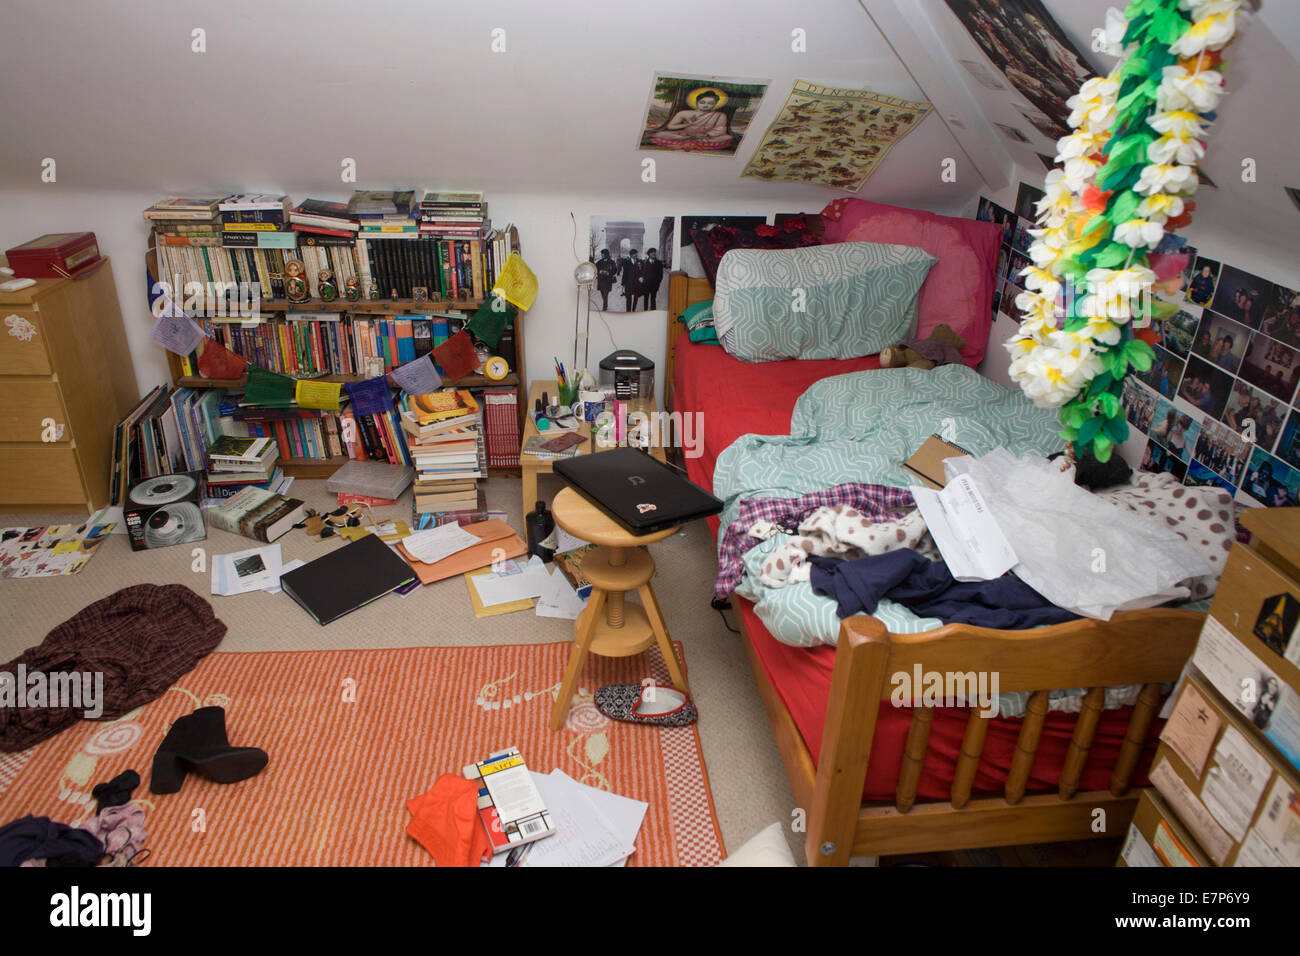 A Teenager S Messy Bedroom With Clothes Books And